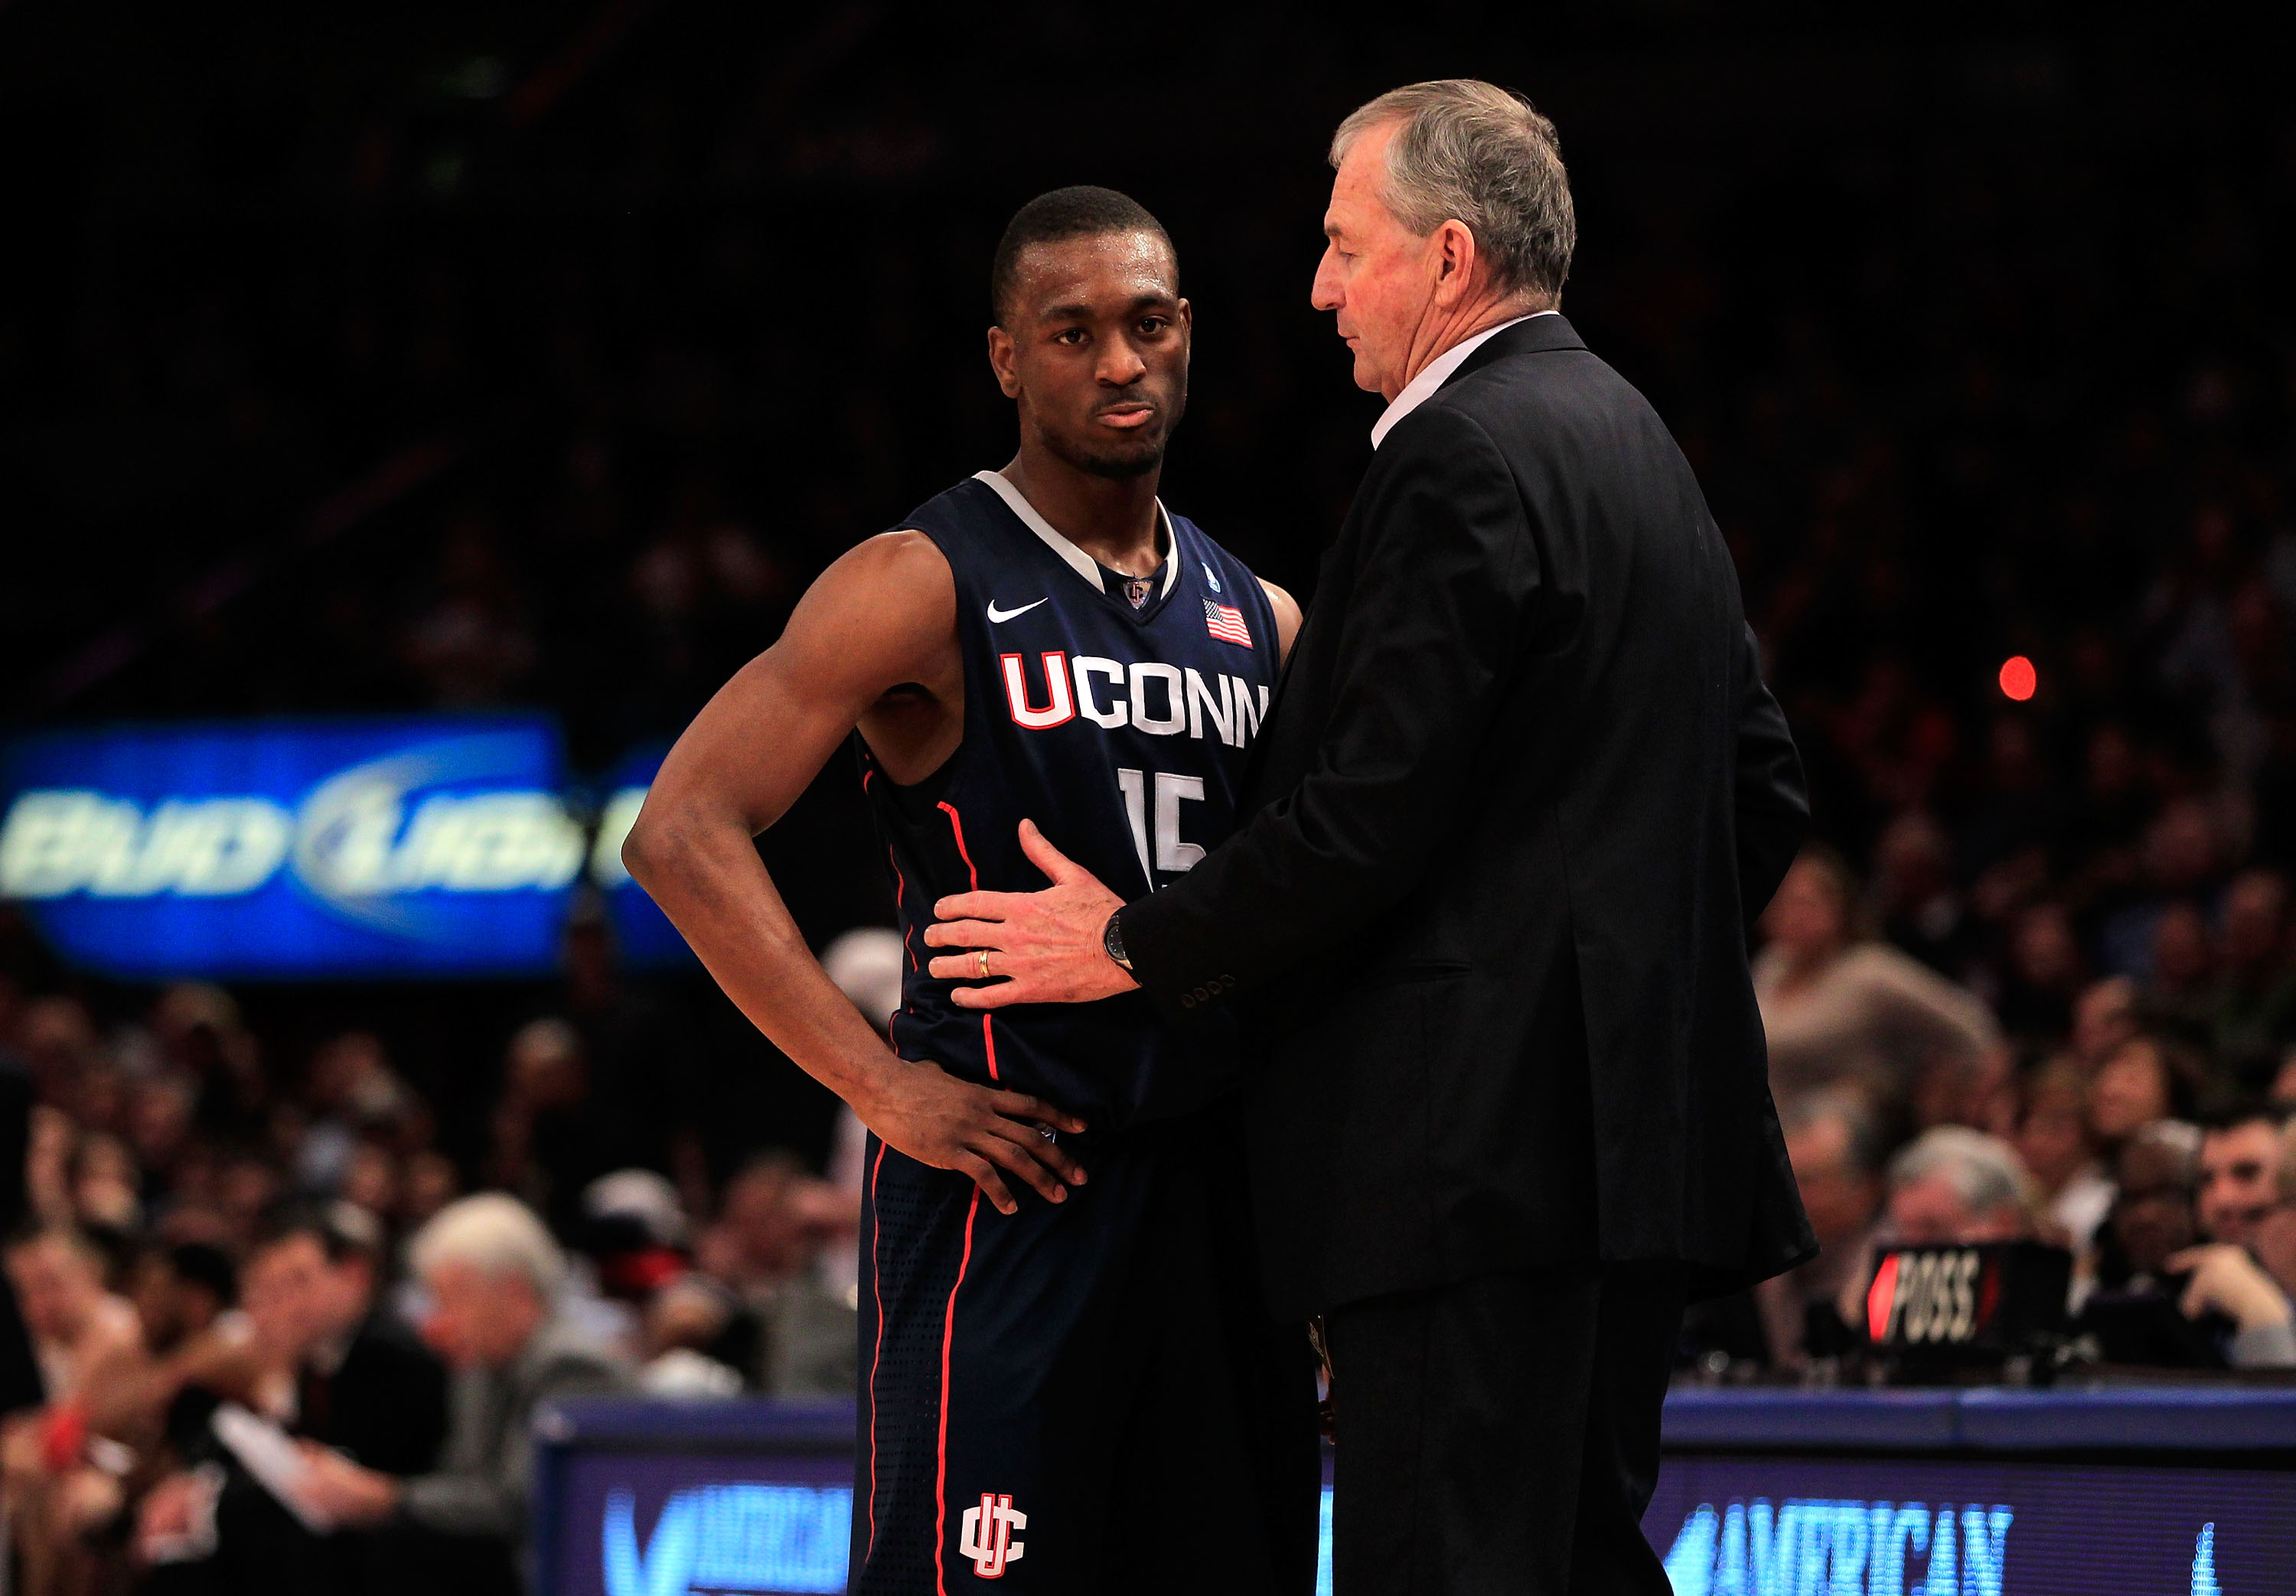 NEW YORK, NY - MARCH 12: Kemba Walker #15 of the Connecticut Huskies speaks with head coach Jim Calhoun during the championship of the 2011 Big East Men's Basketball Tournament presented by American Eagle Outfitters at Madison Square Garden on March 12, 2